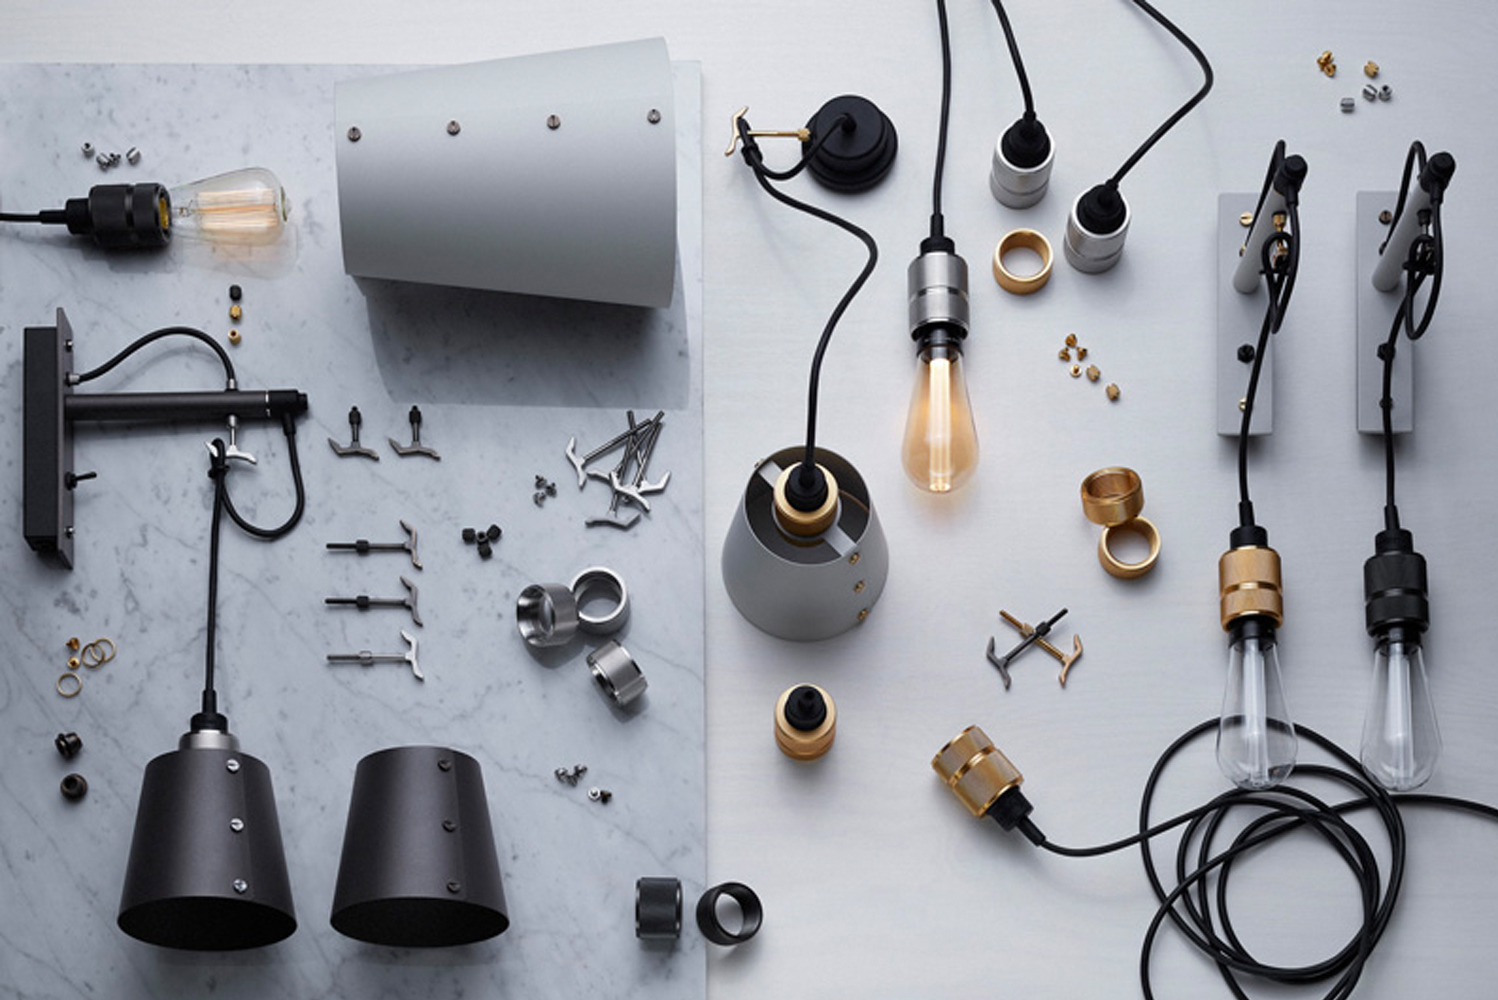 Introducing home fashion label Buster + Punch's fully customizable Hooked lighting collection, which features various configuration options to give the installer full control over the light's trajectory.